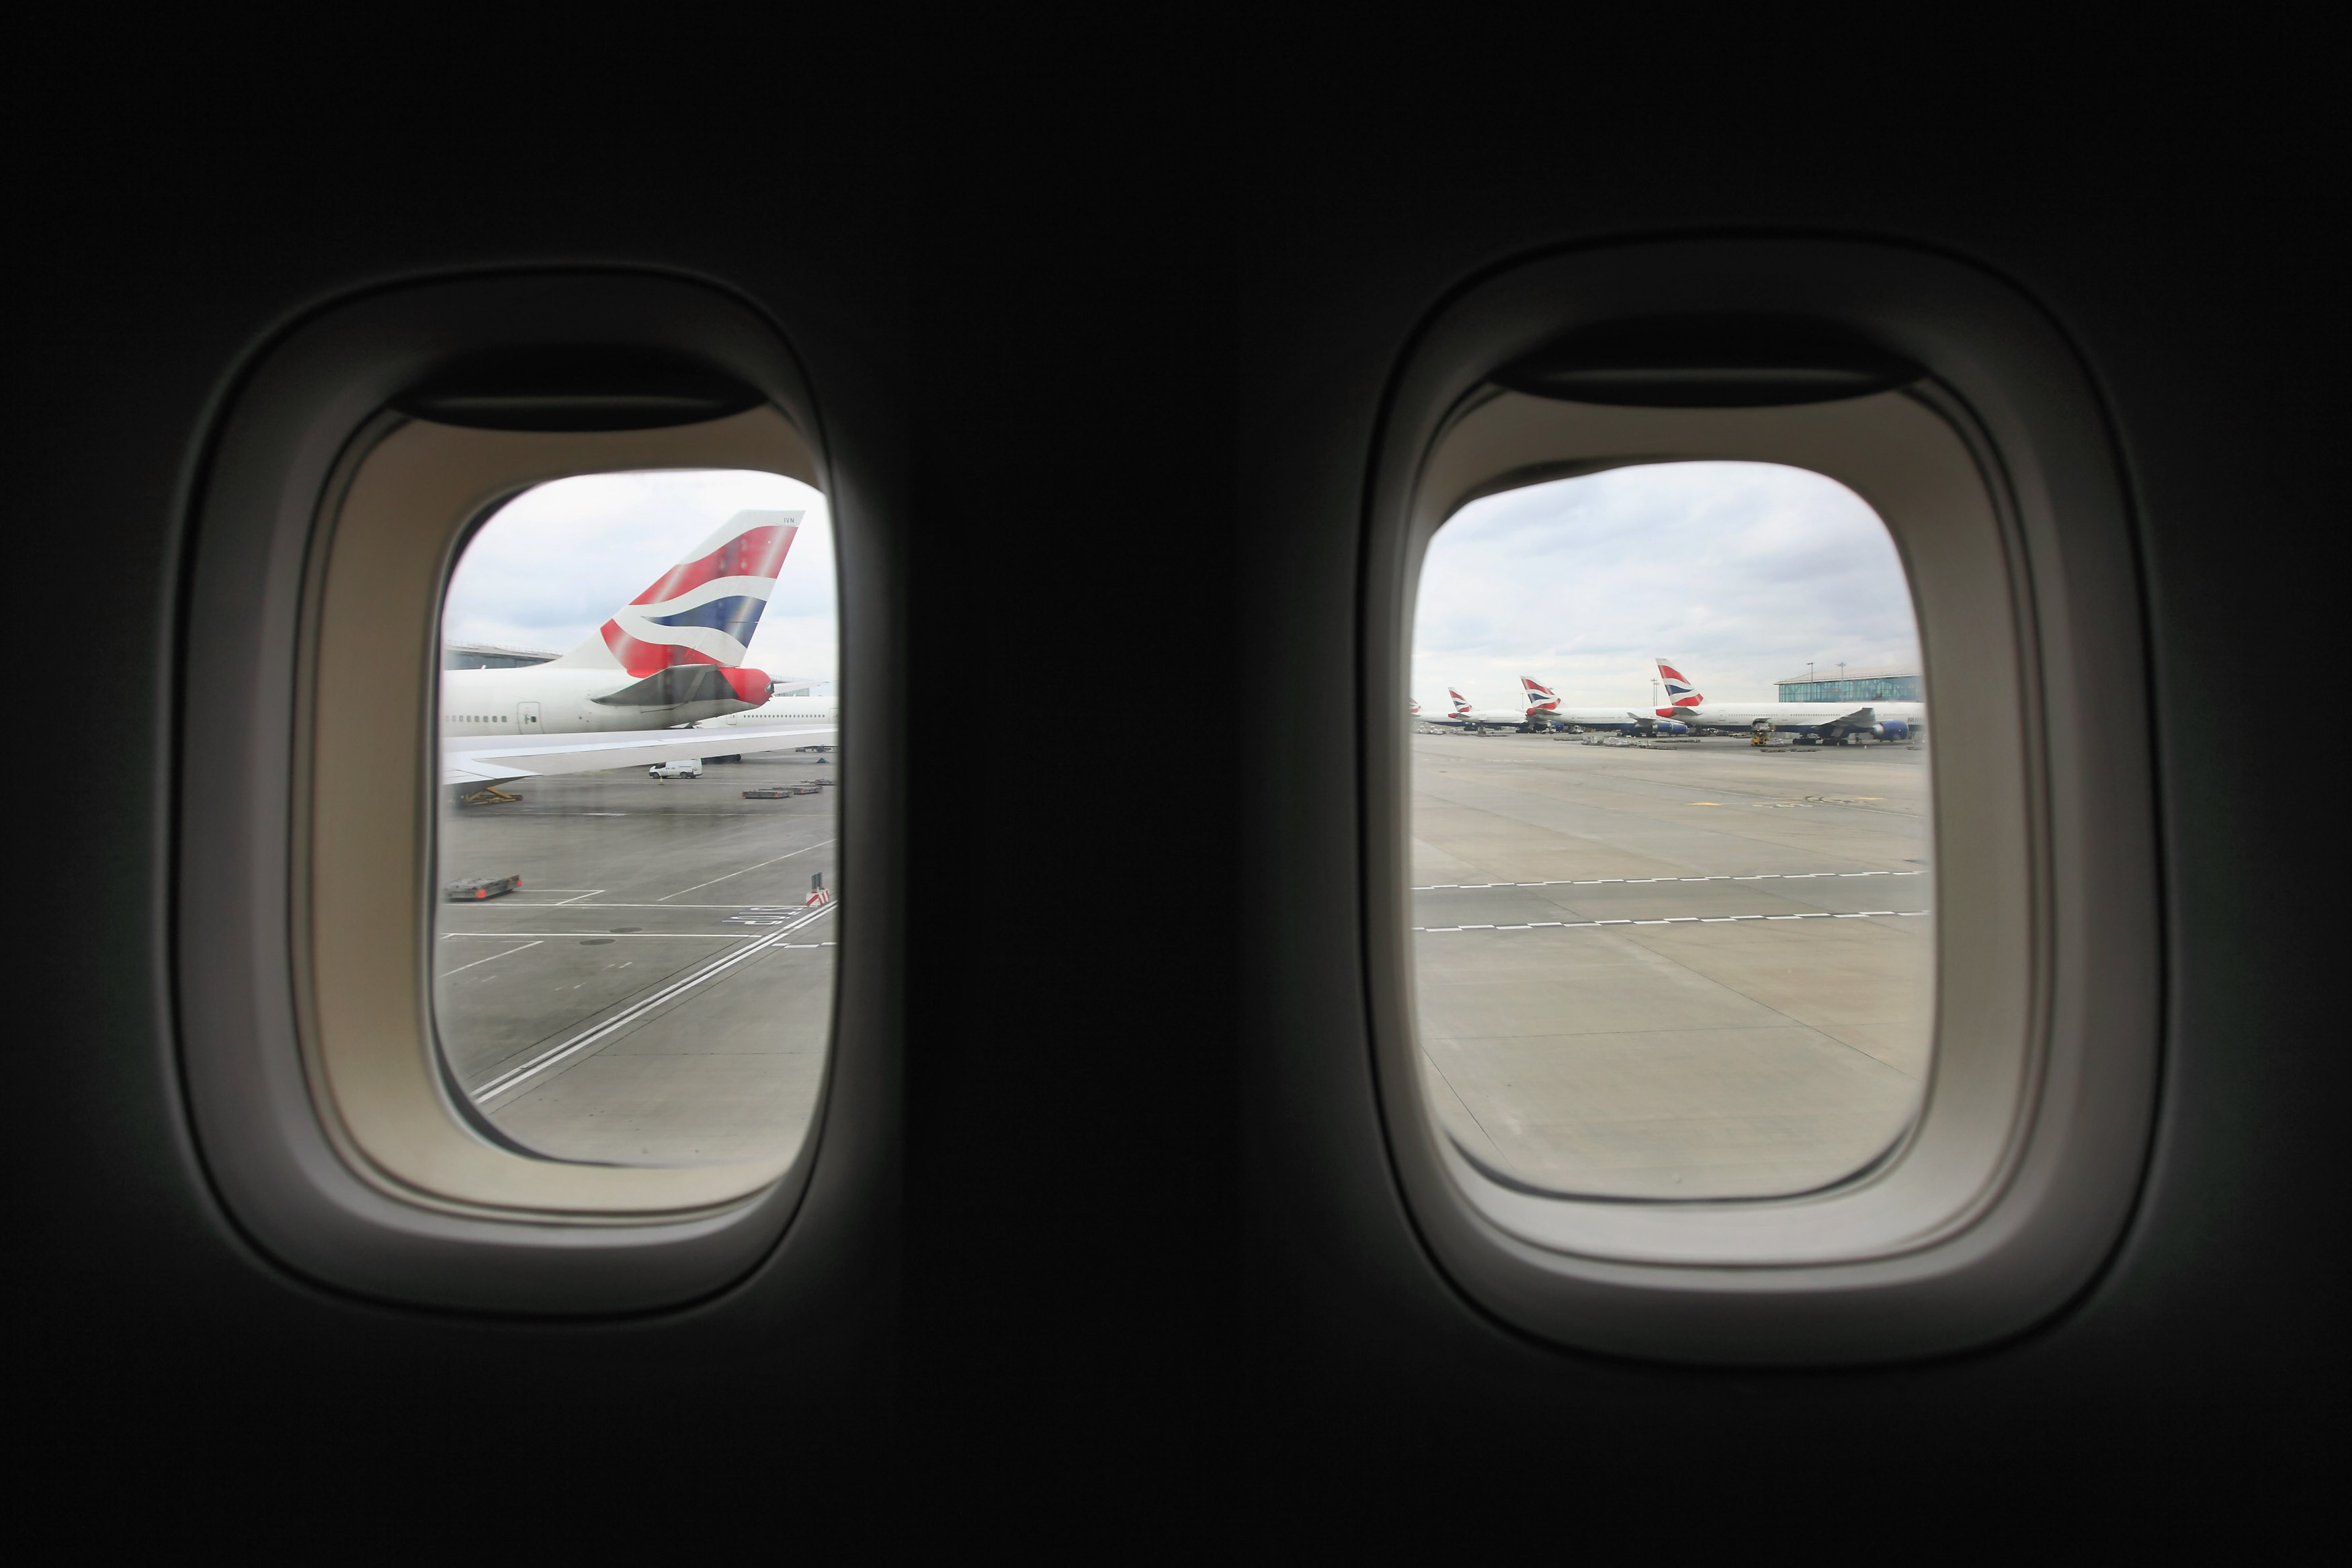 GettyImages 139504011 Heres What The Tiny Holes In Airplane Windows Are For